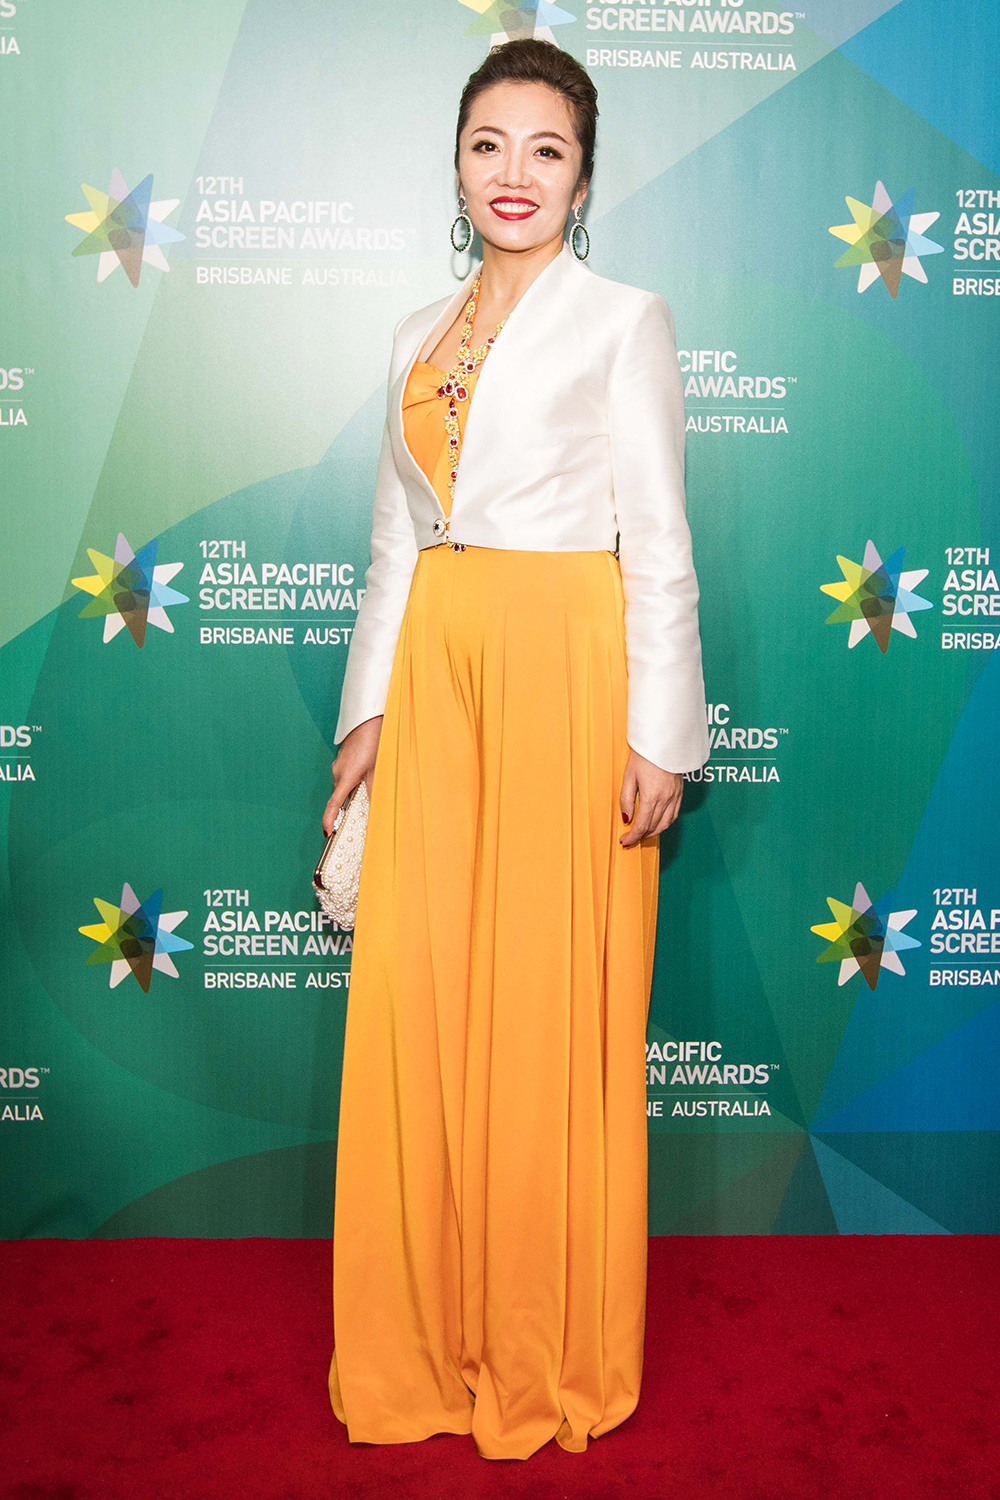 Yellow Evening Dress on the Red Carpet of the APSA in Brisbane